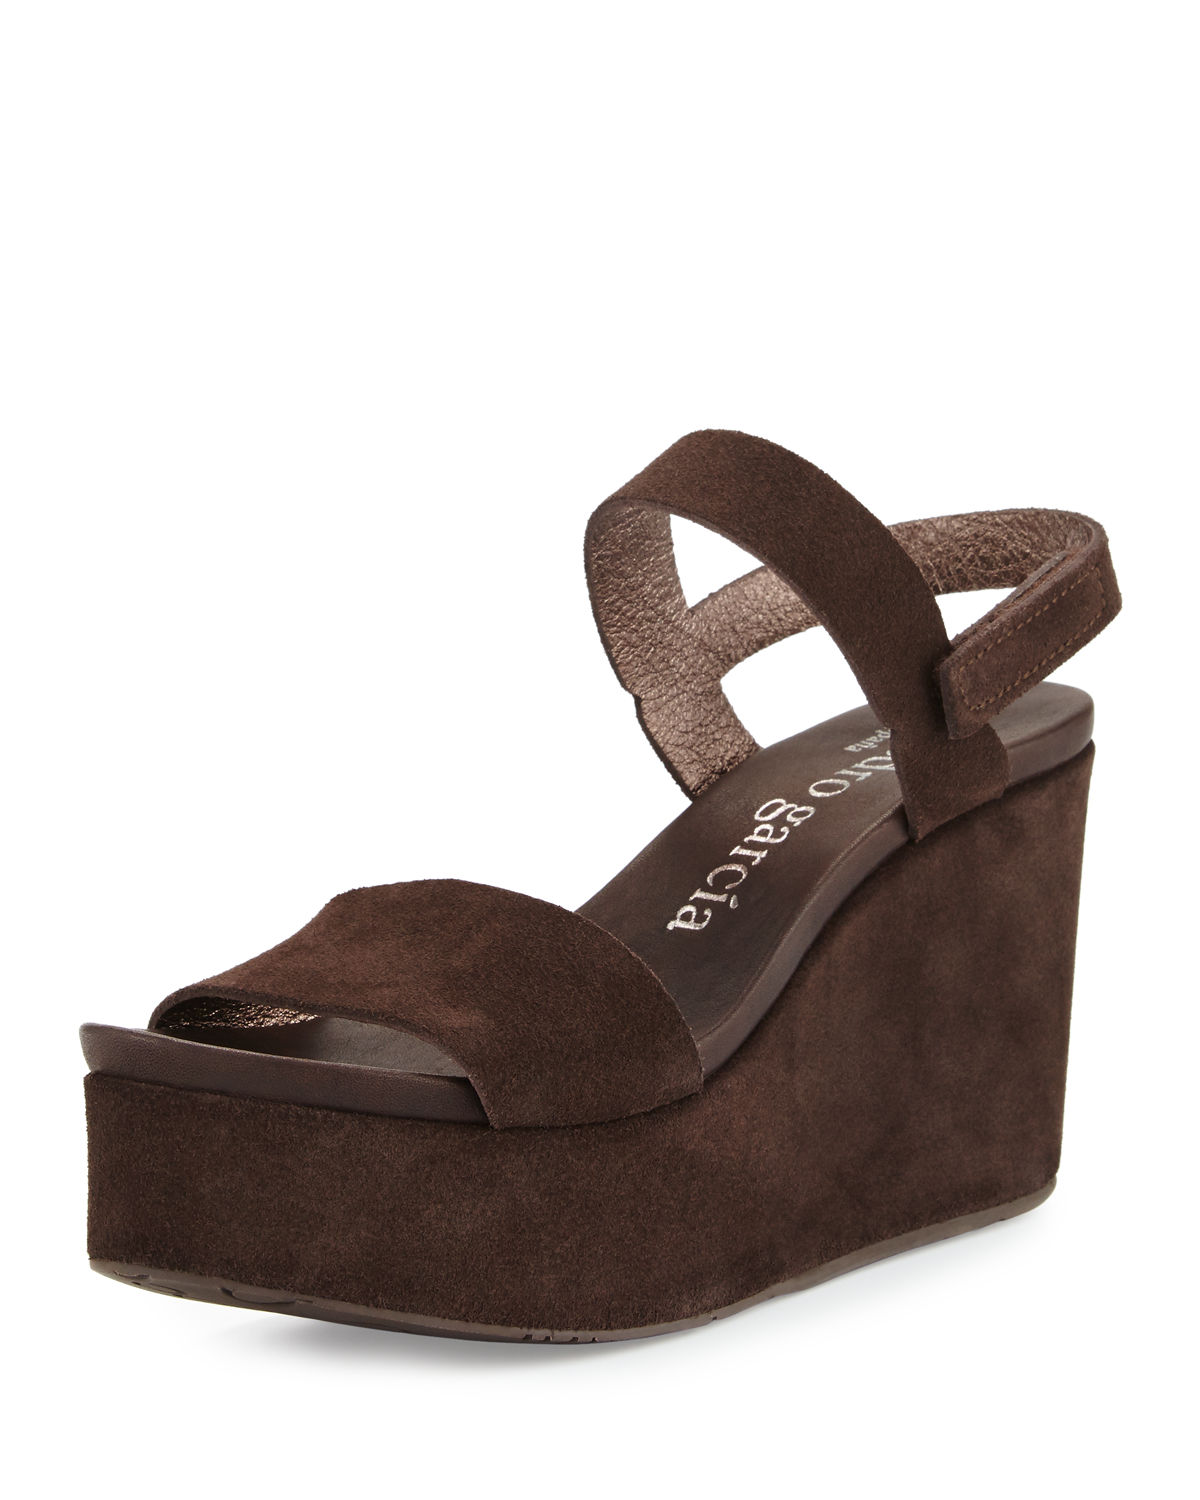 Dulce Suede Wedge Sandal